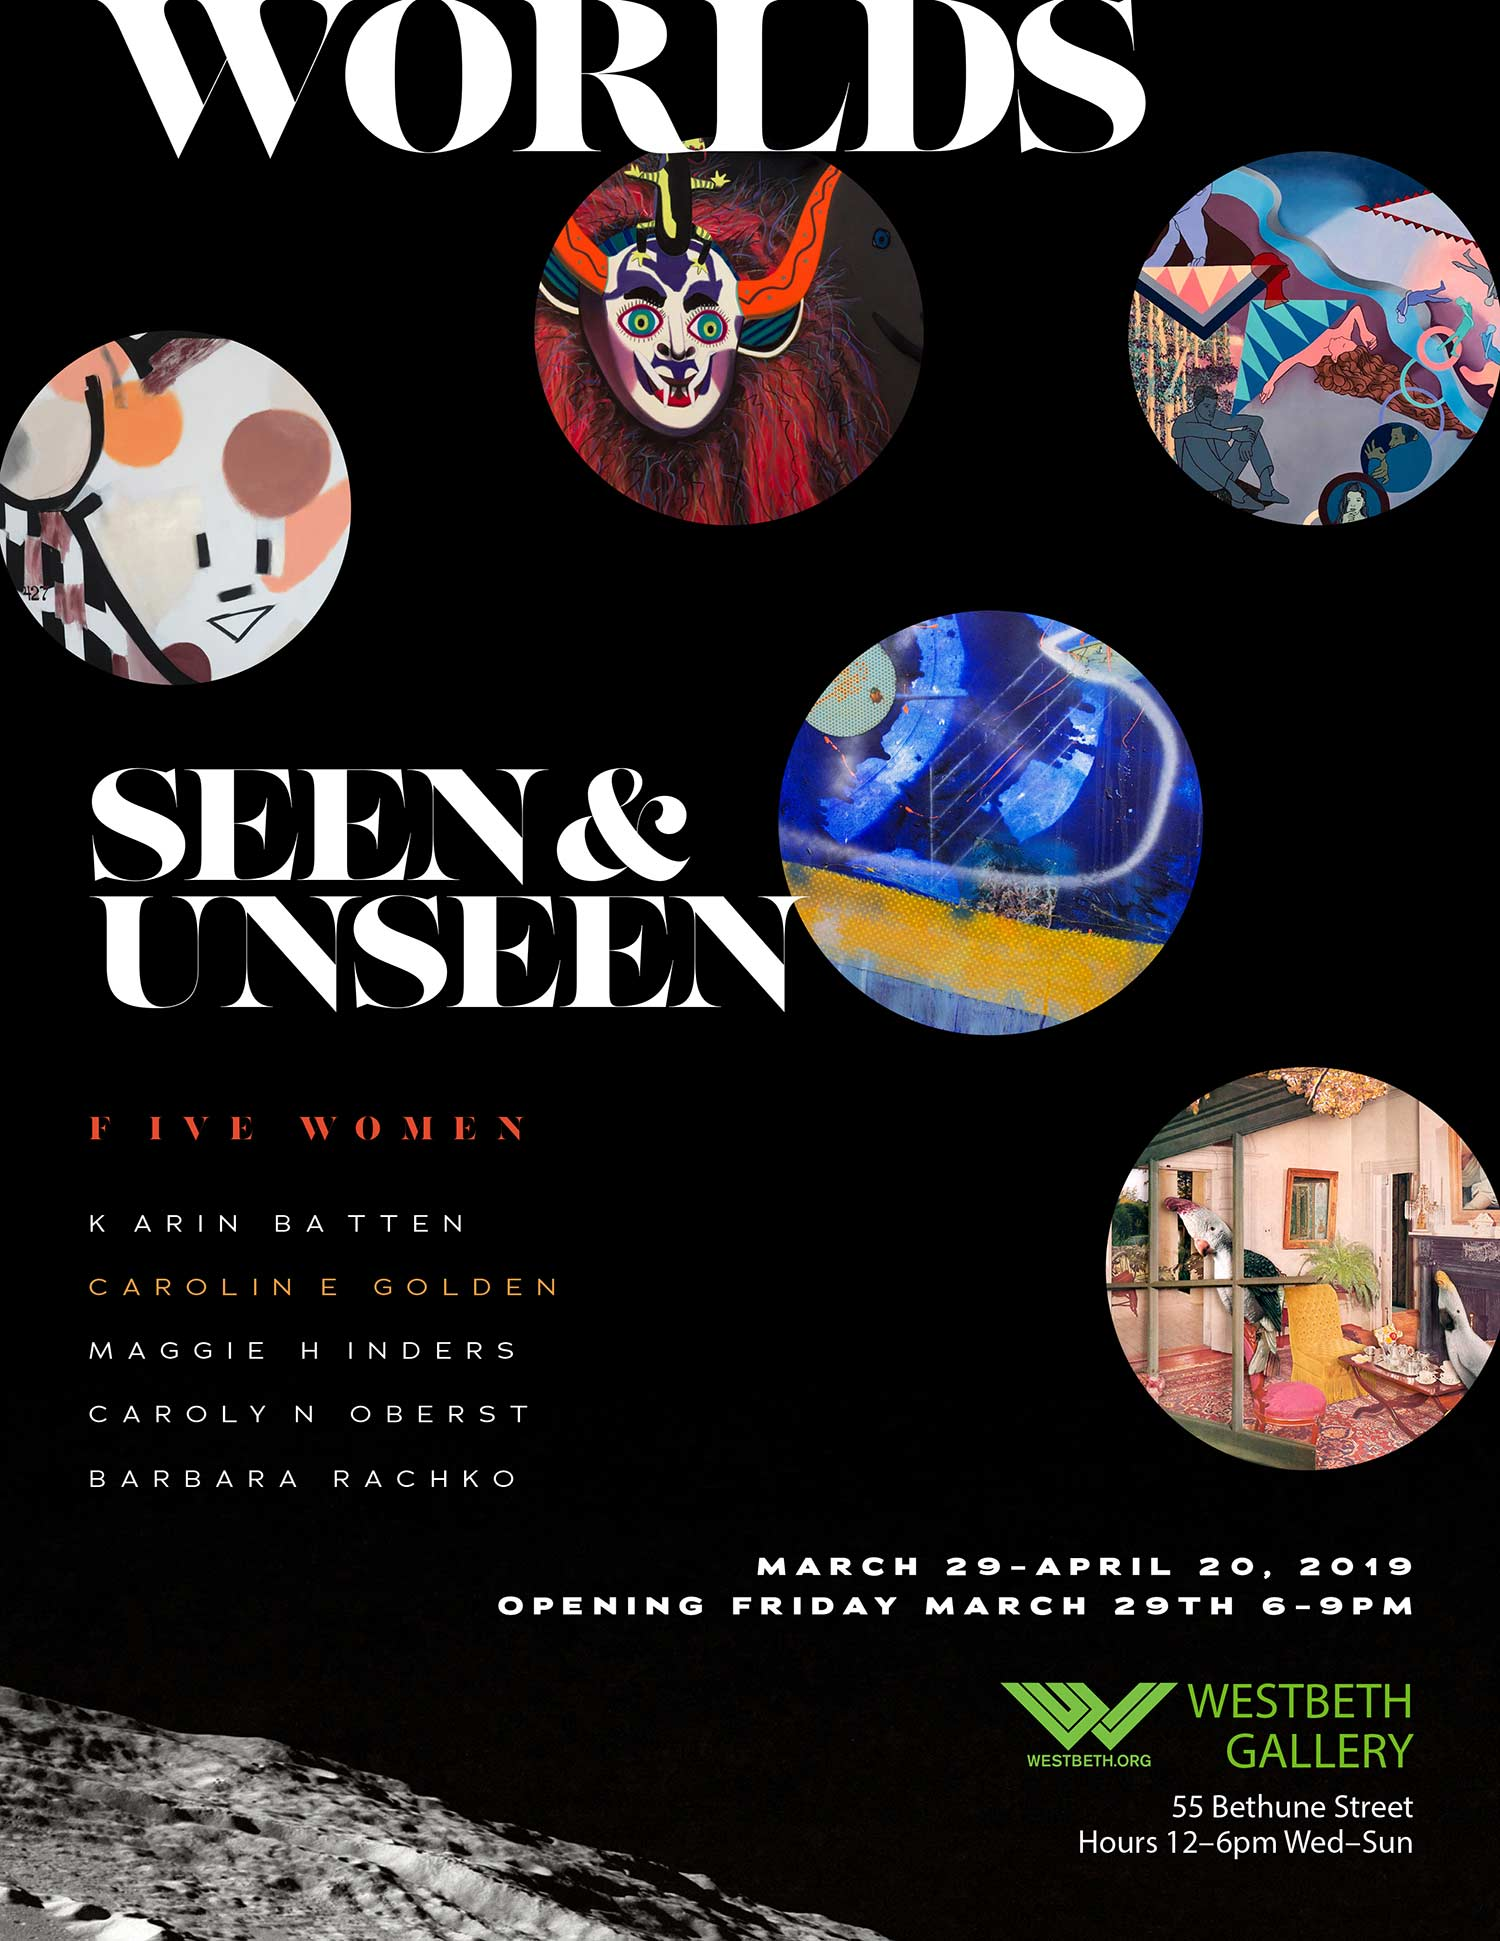 """WOrlds Seen & Unseen - Westbeth Gallery presents the dynamic show """"Worlds Seen & Unseen"""" by five contemporary New York-based women artists: Karin Batten, Caroline Golden, Maggie Hinders, Carolyn Oberst, and Barbara Rachko. Through variations in media, form, and composition, their new works bring unseen worlds into focus. From far away worlds hail masks and animals, myths, inner dreams, and human interactions, offering female perspectives of new environments to be seen.March 29th - April 20th, 2019"""